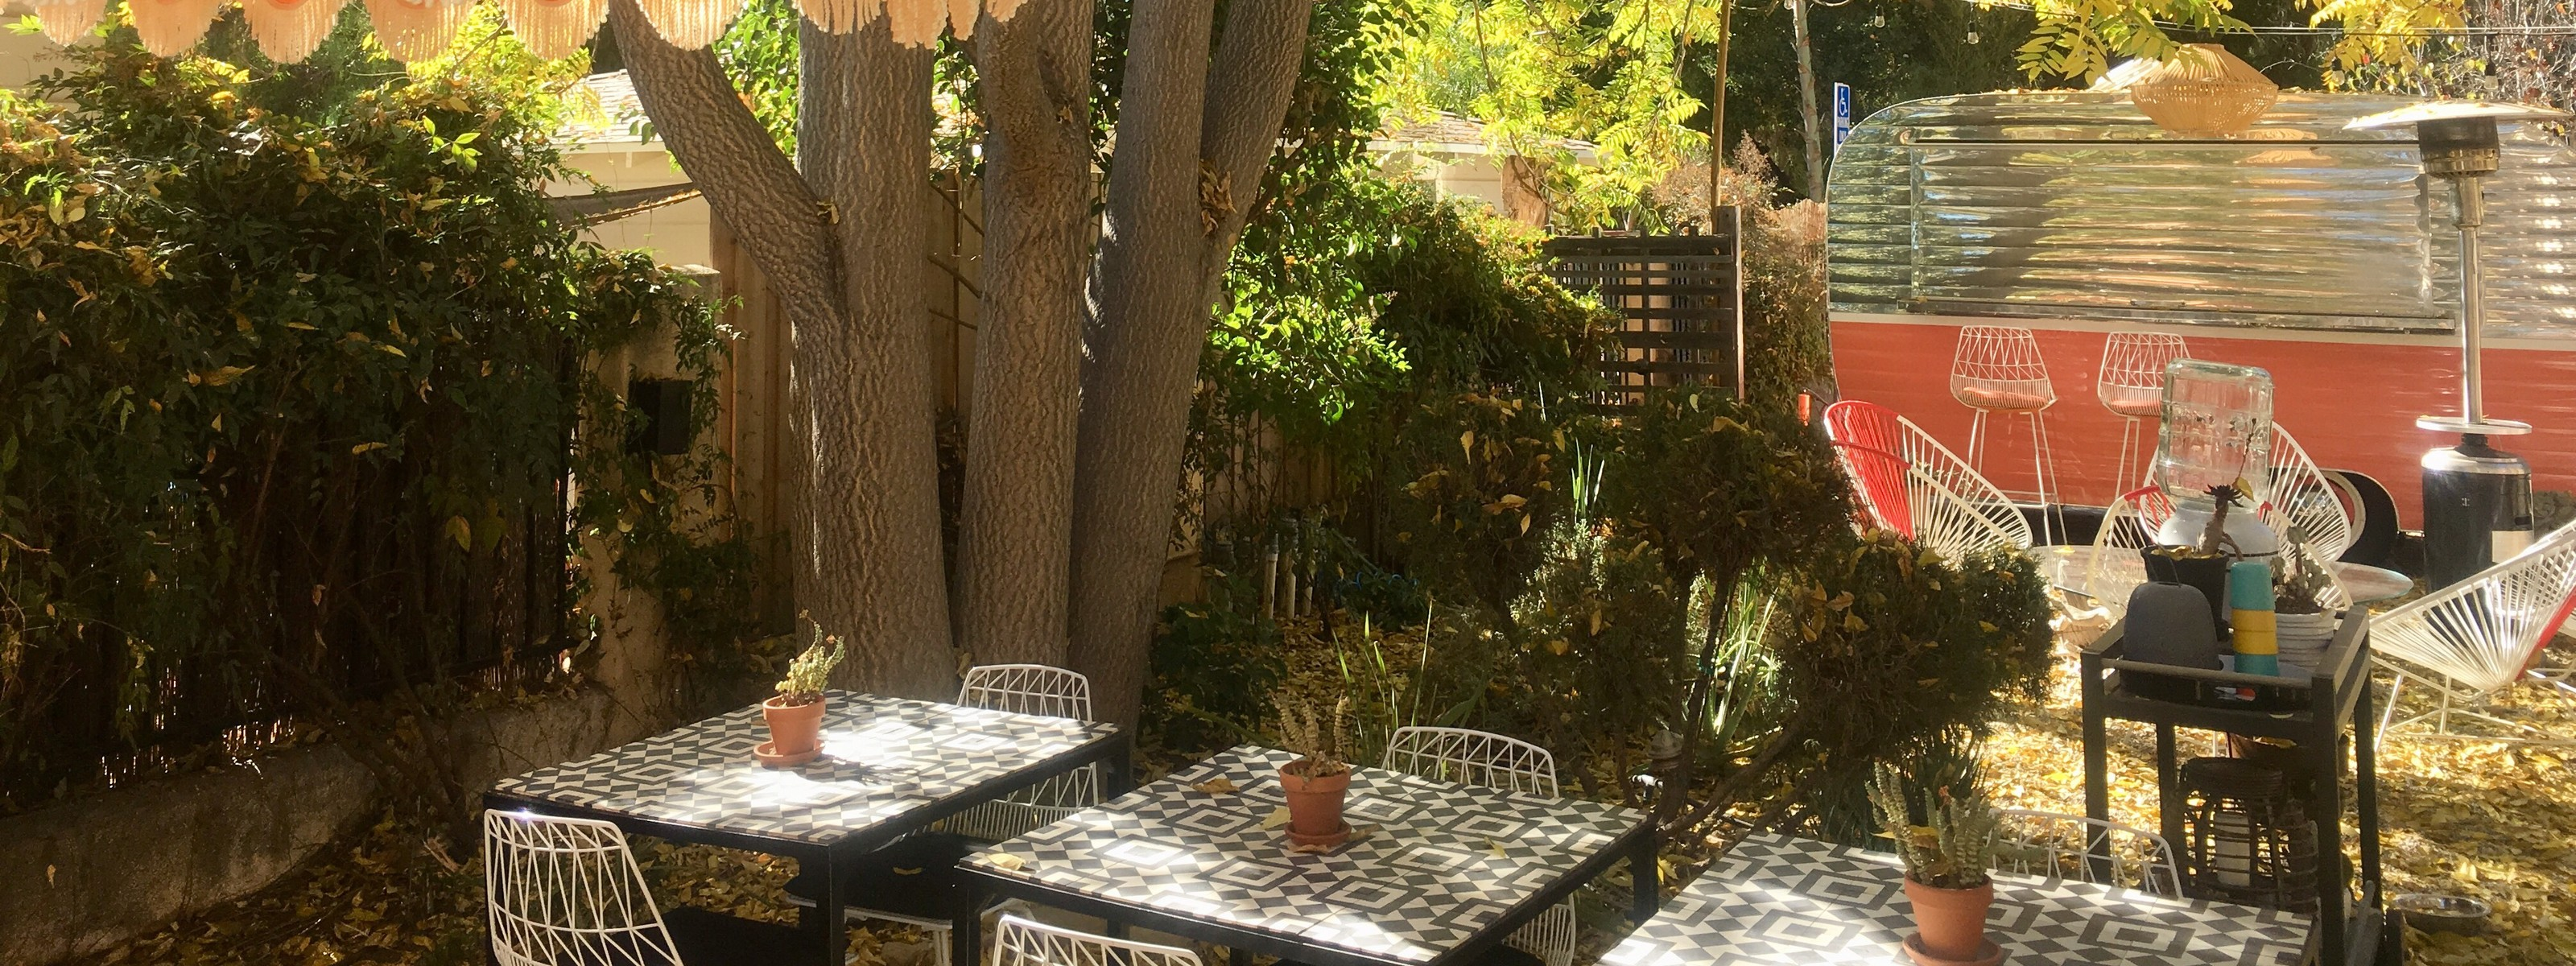 Where To Eat Drink In Ojai Ojai Los Angeles The